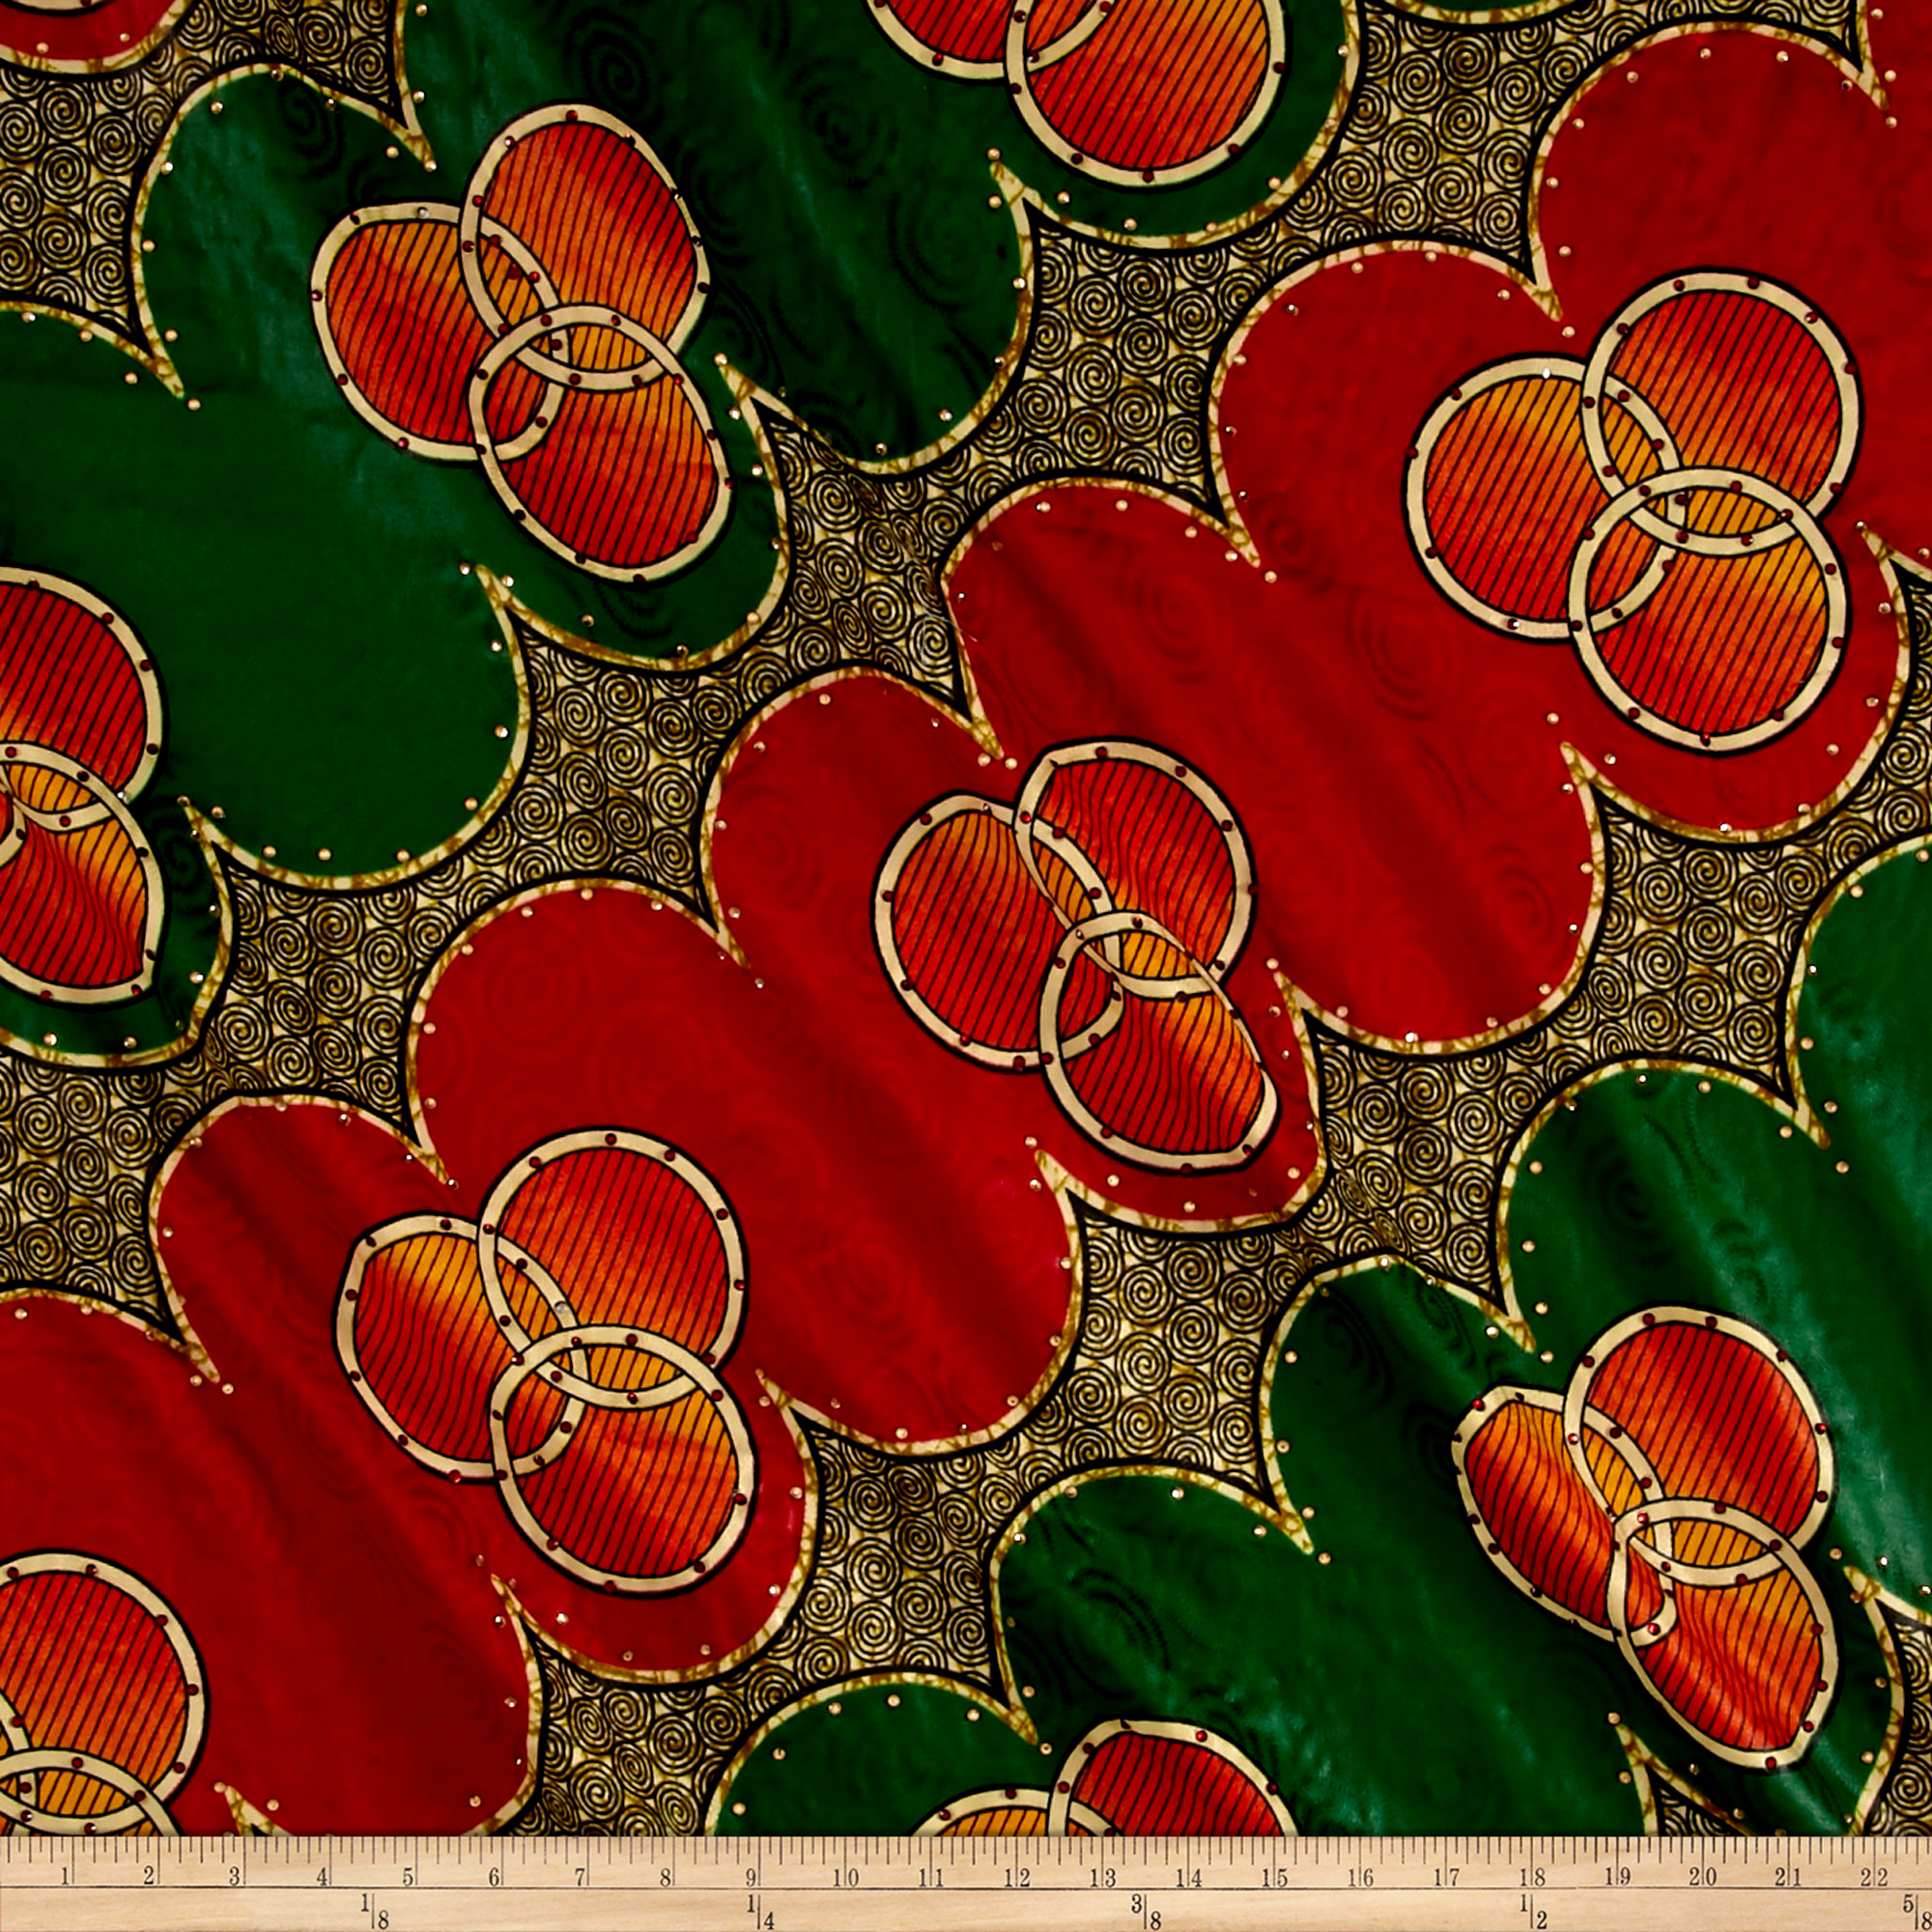 Supreme Basin African Print Broadcloth 6 Yard With Rhinestones Red/green